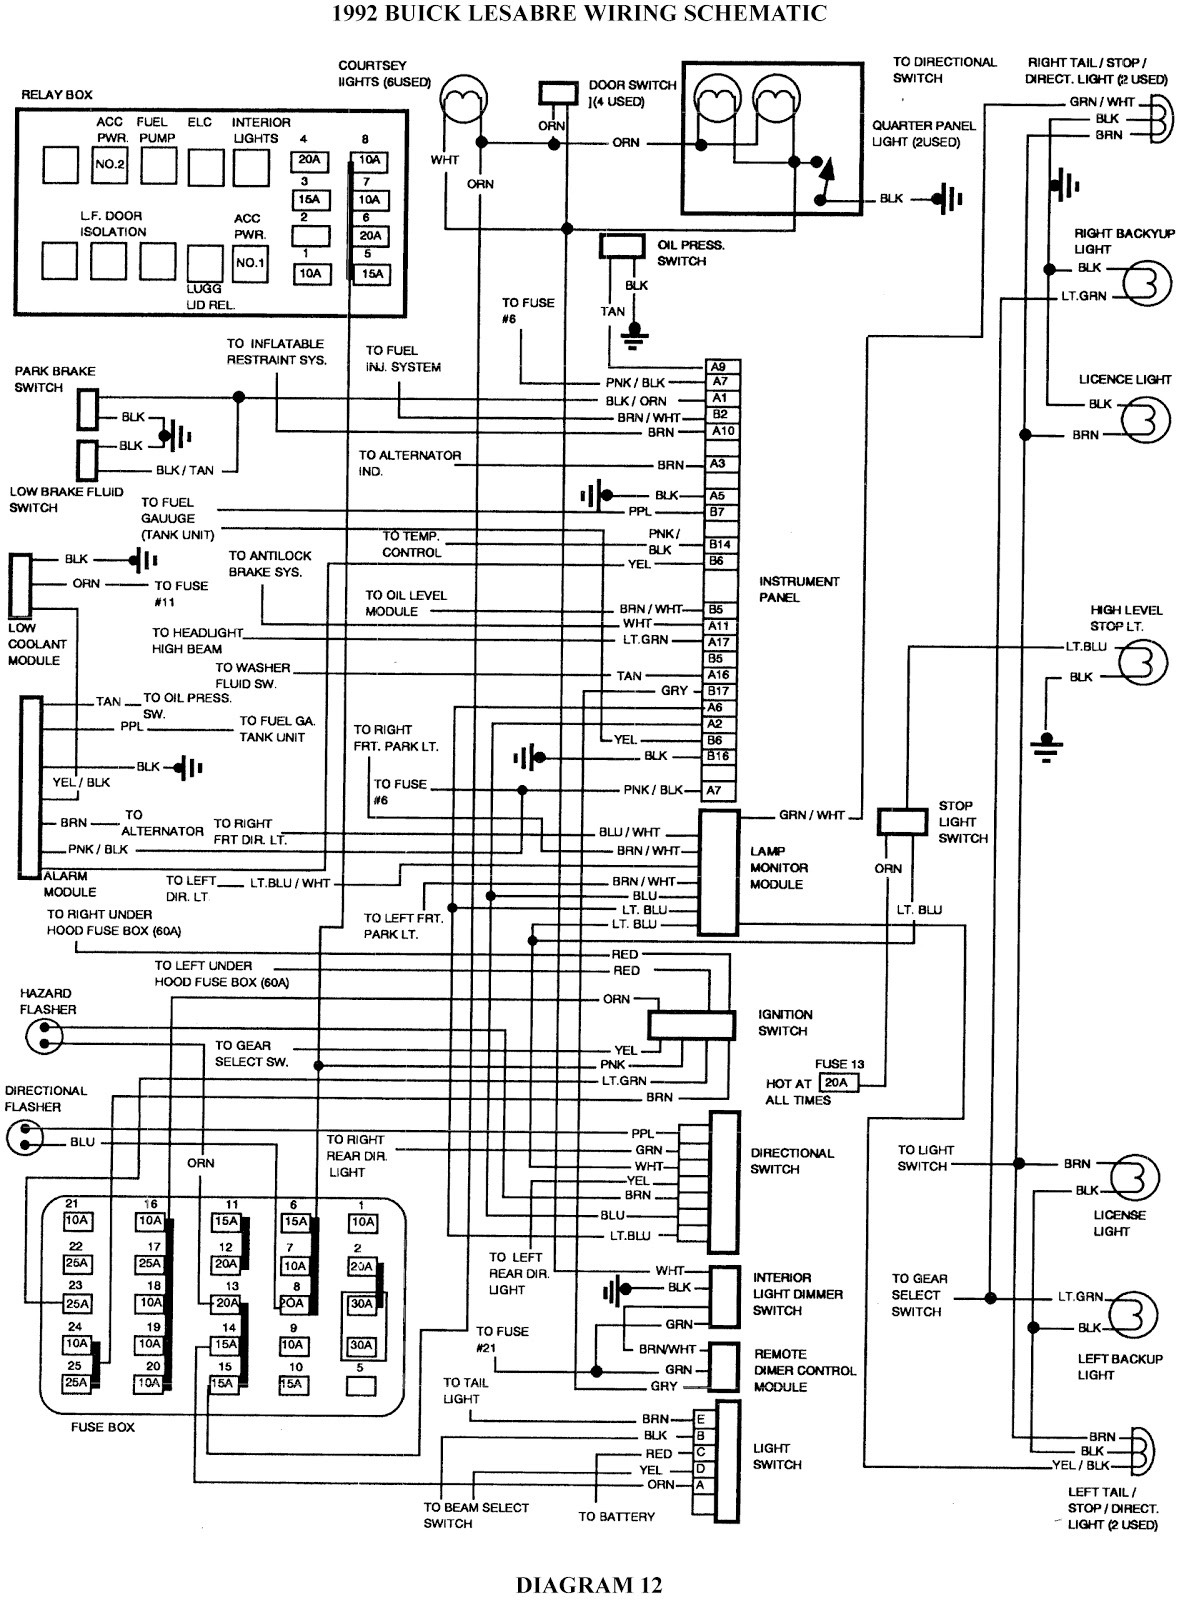 oldsmobile remote starter diagram